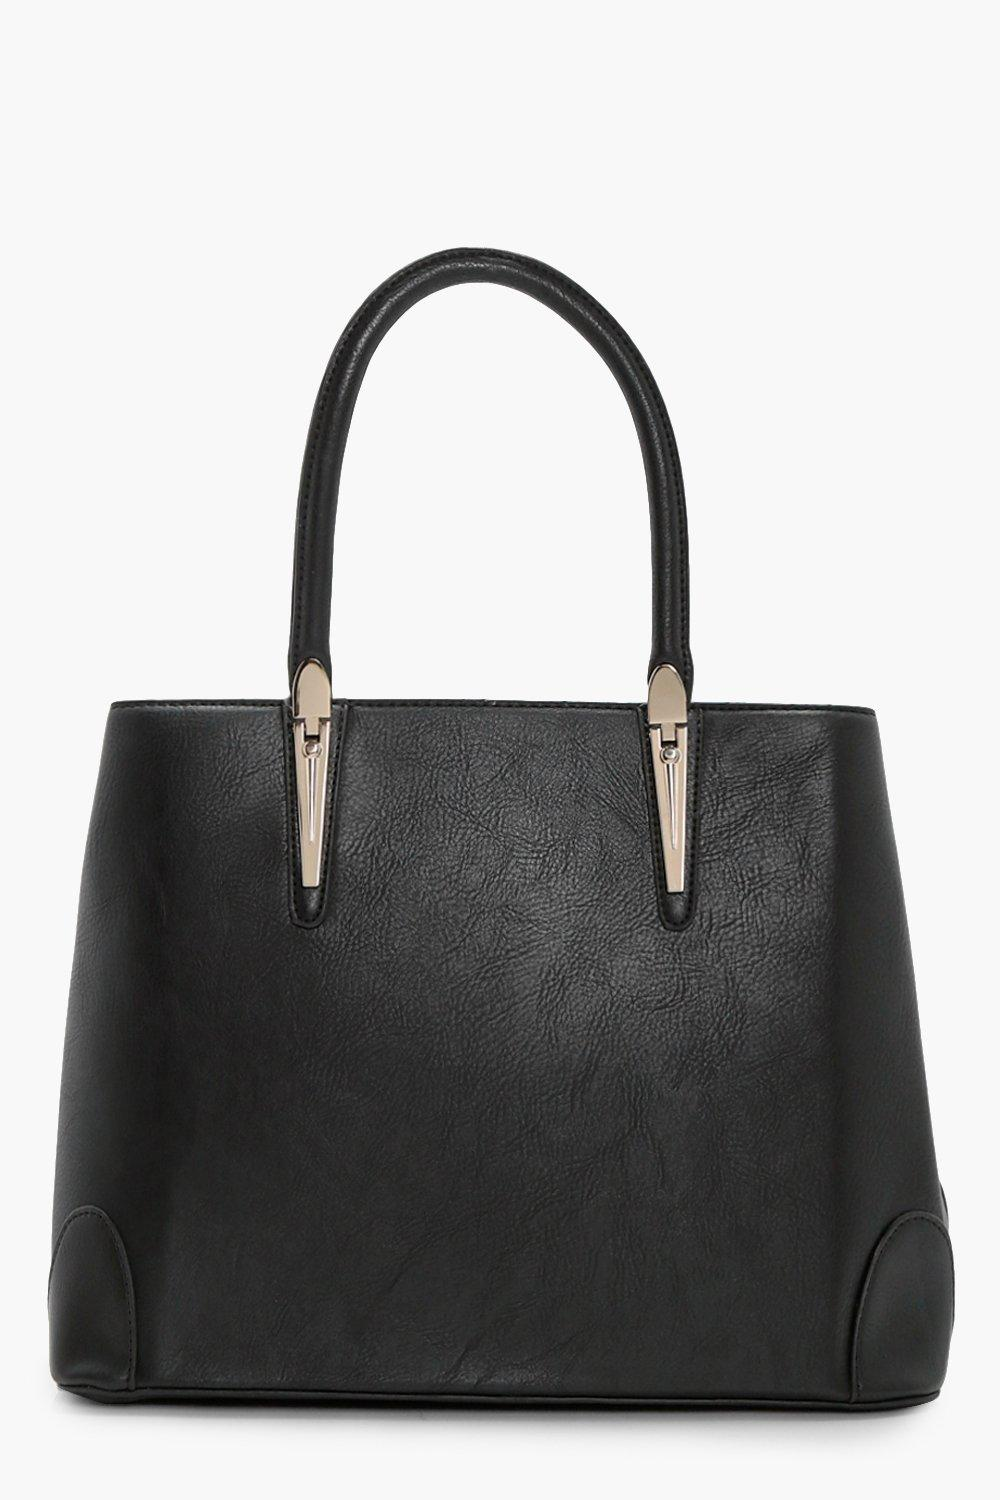 Metal Bar Tote - black - Ella Metal Bar Tote - bla